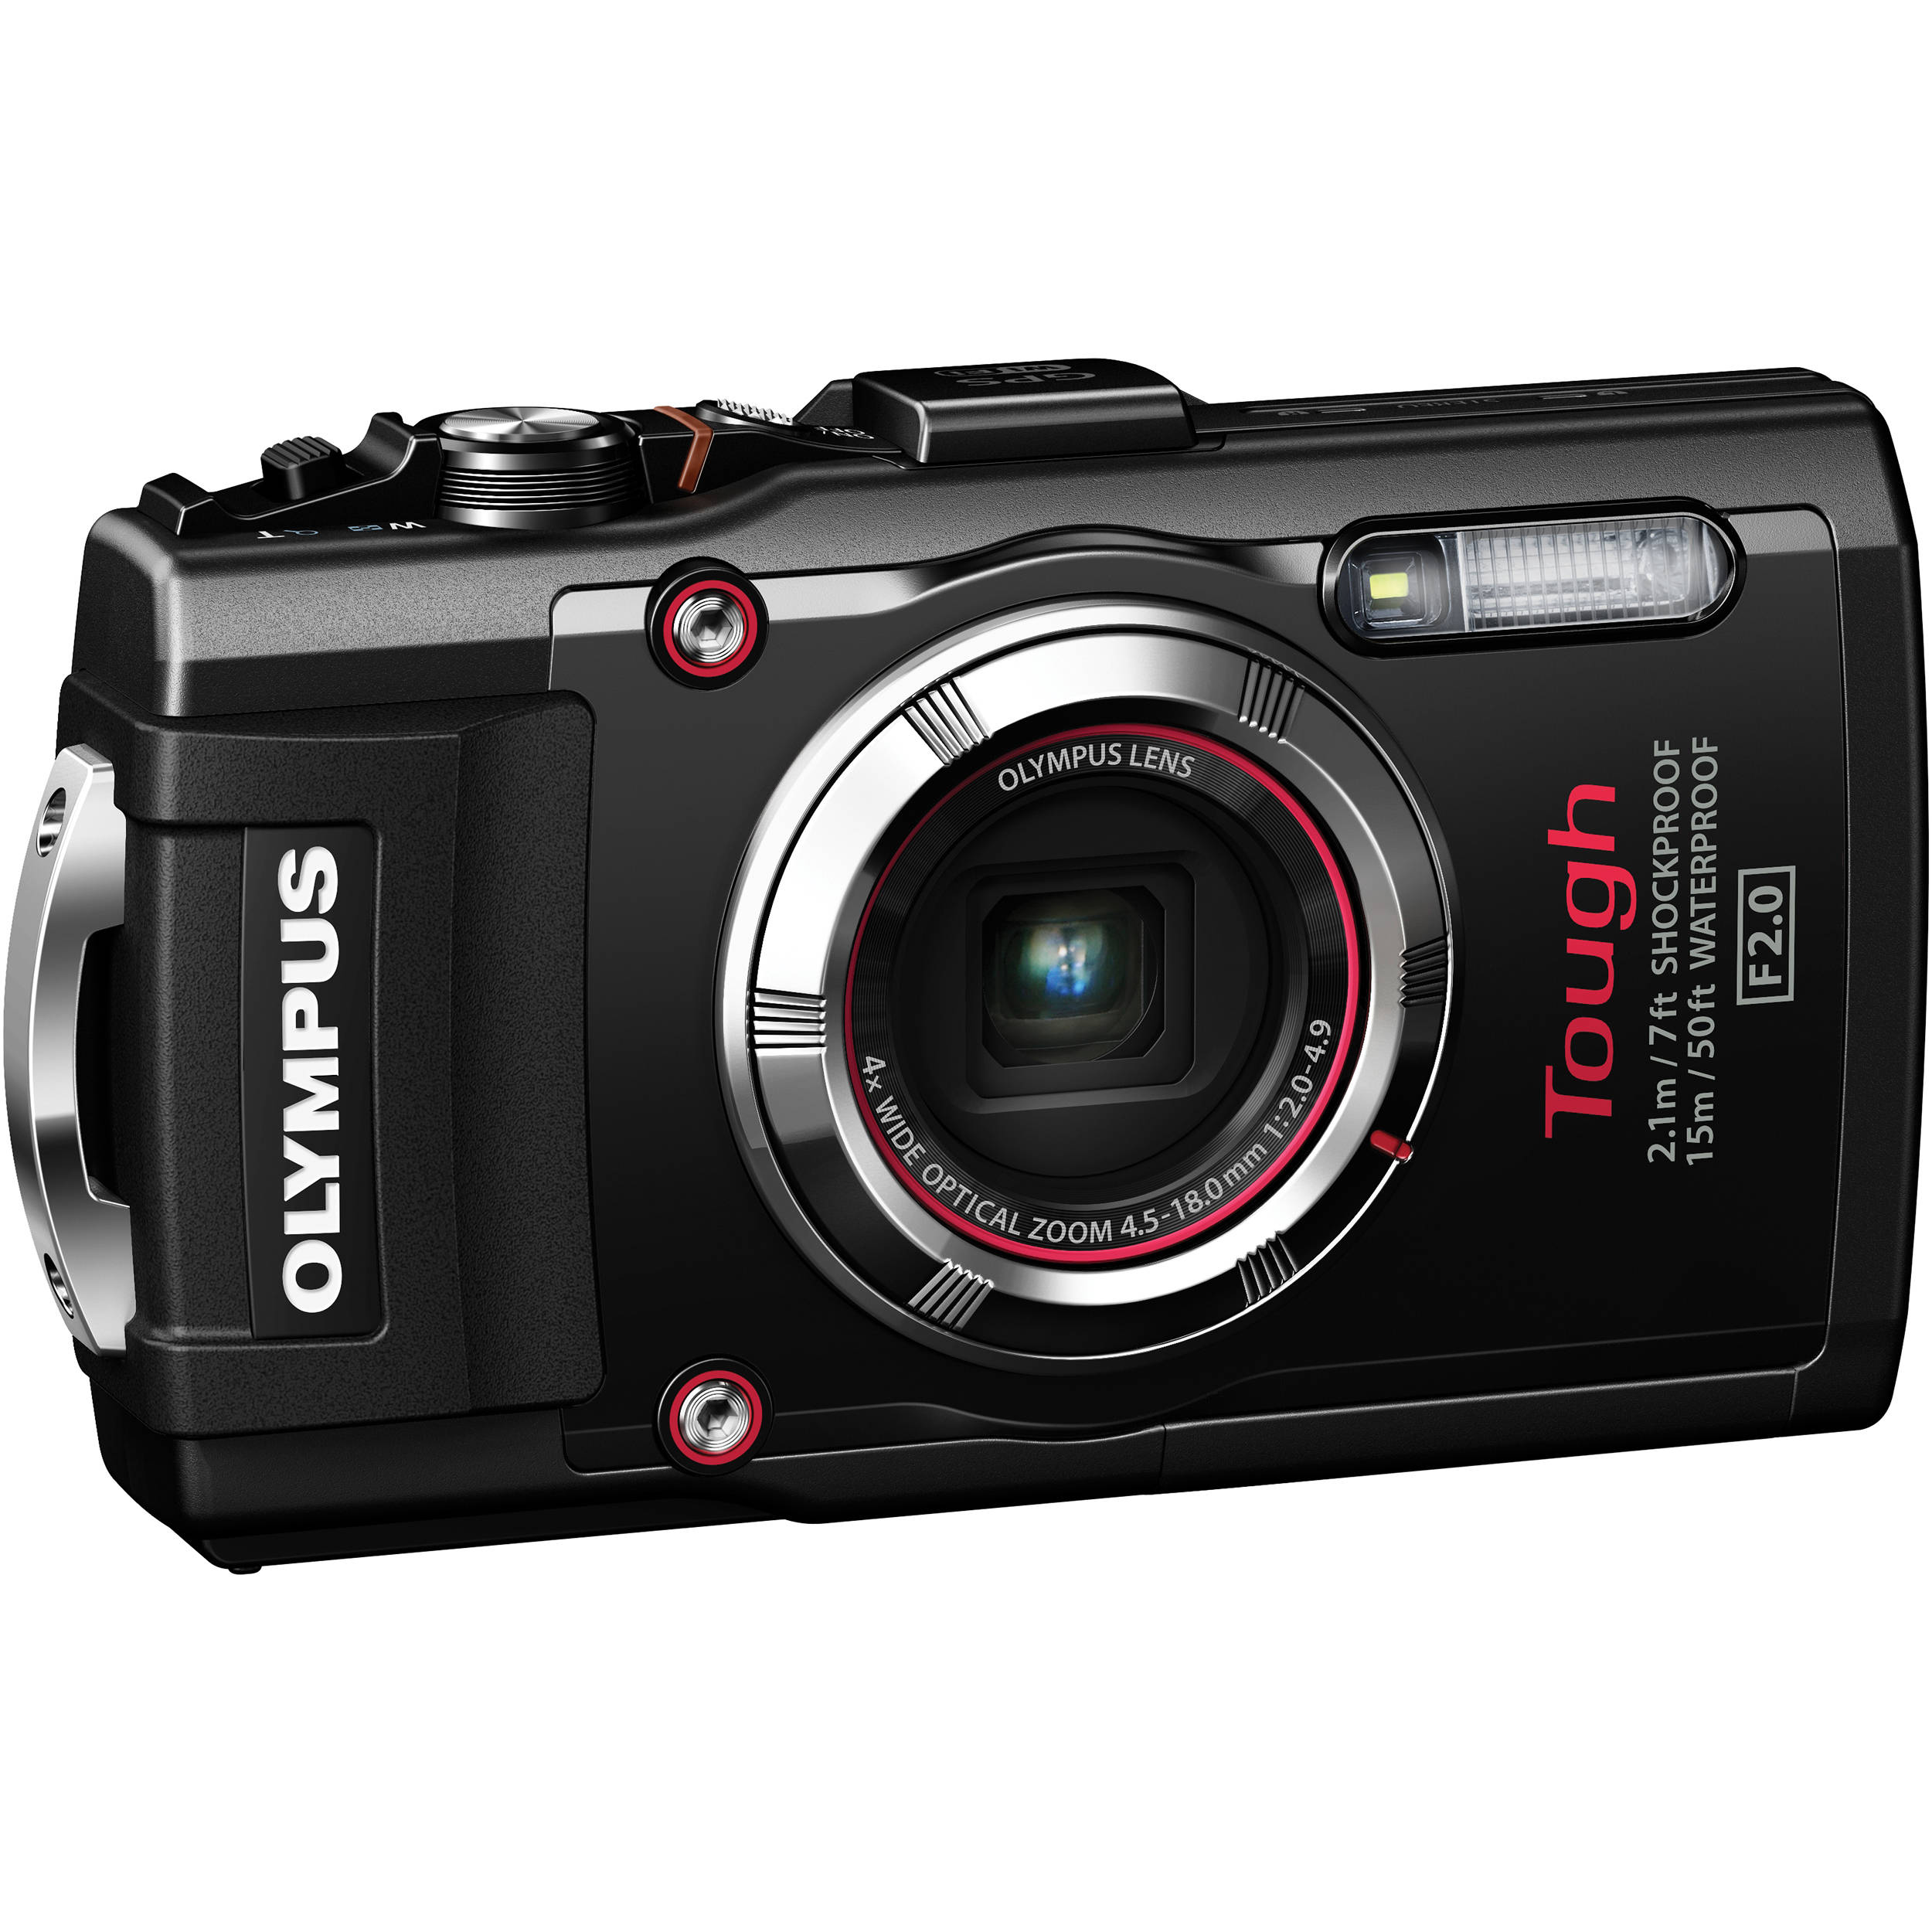 Olympus Digital Camera: Olympus Stylus TOUGH TG-3 Digital Camera (Black) V104140BU000